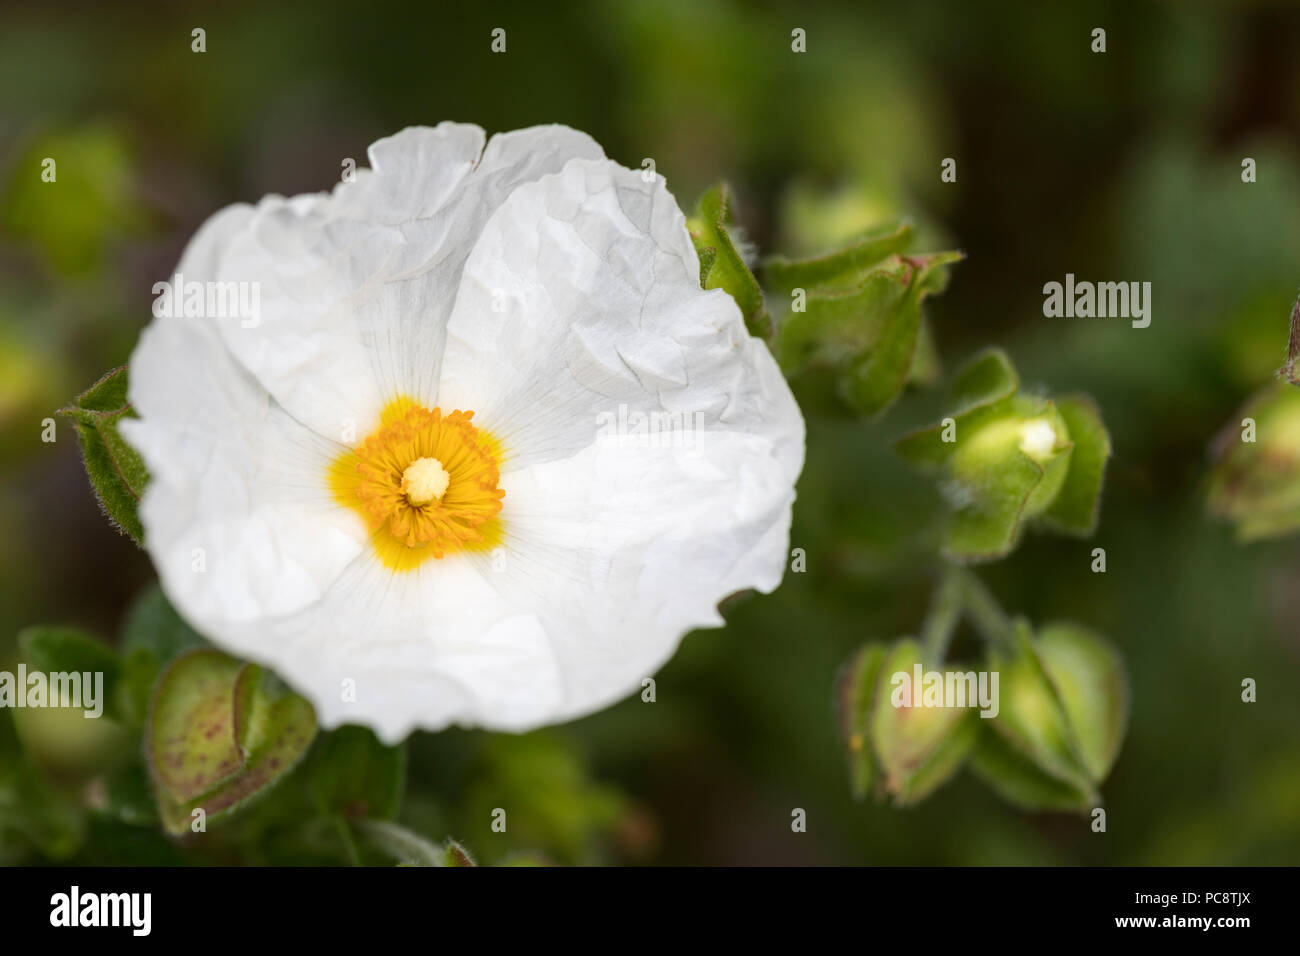 Close up  of a white Cistus x obtusifolius 'Thrive' / Rock Rose flowering in a Wiltshire garden - Stock Image